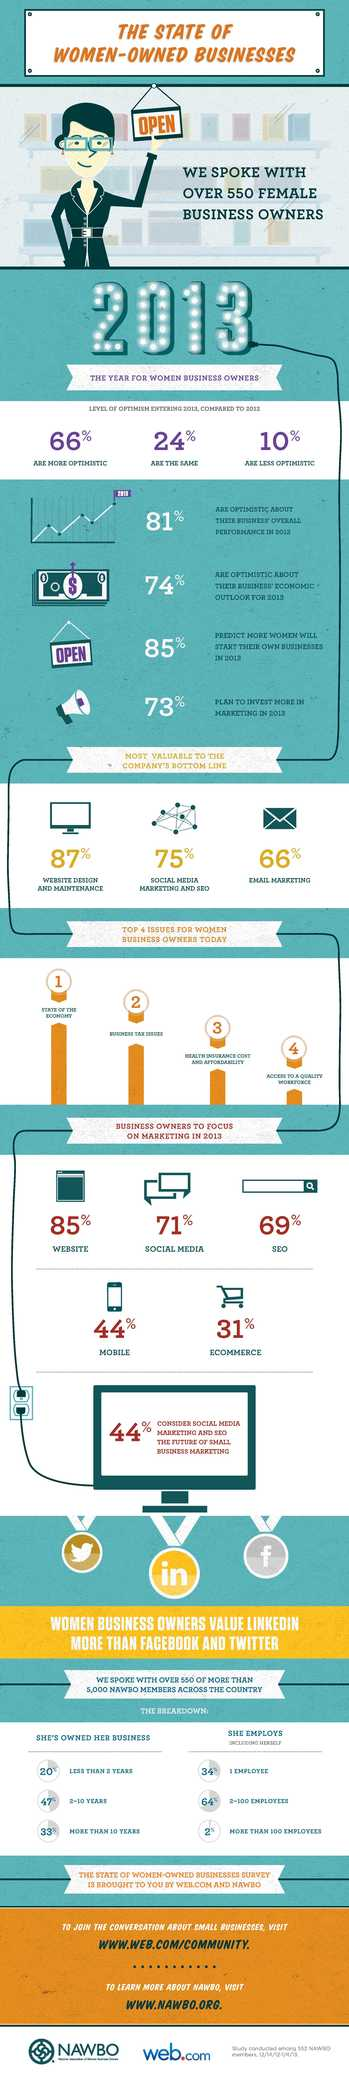 2013 -State-of-Women-Owned-Businesses-Survey Infographic.jpg